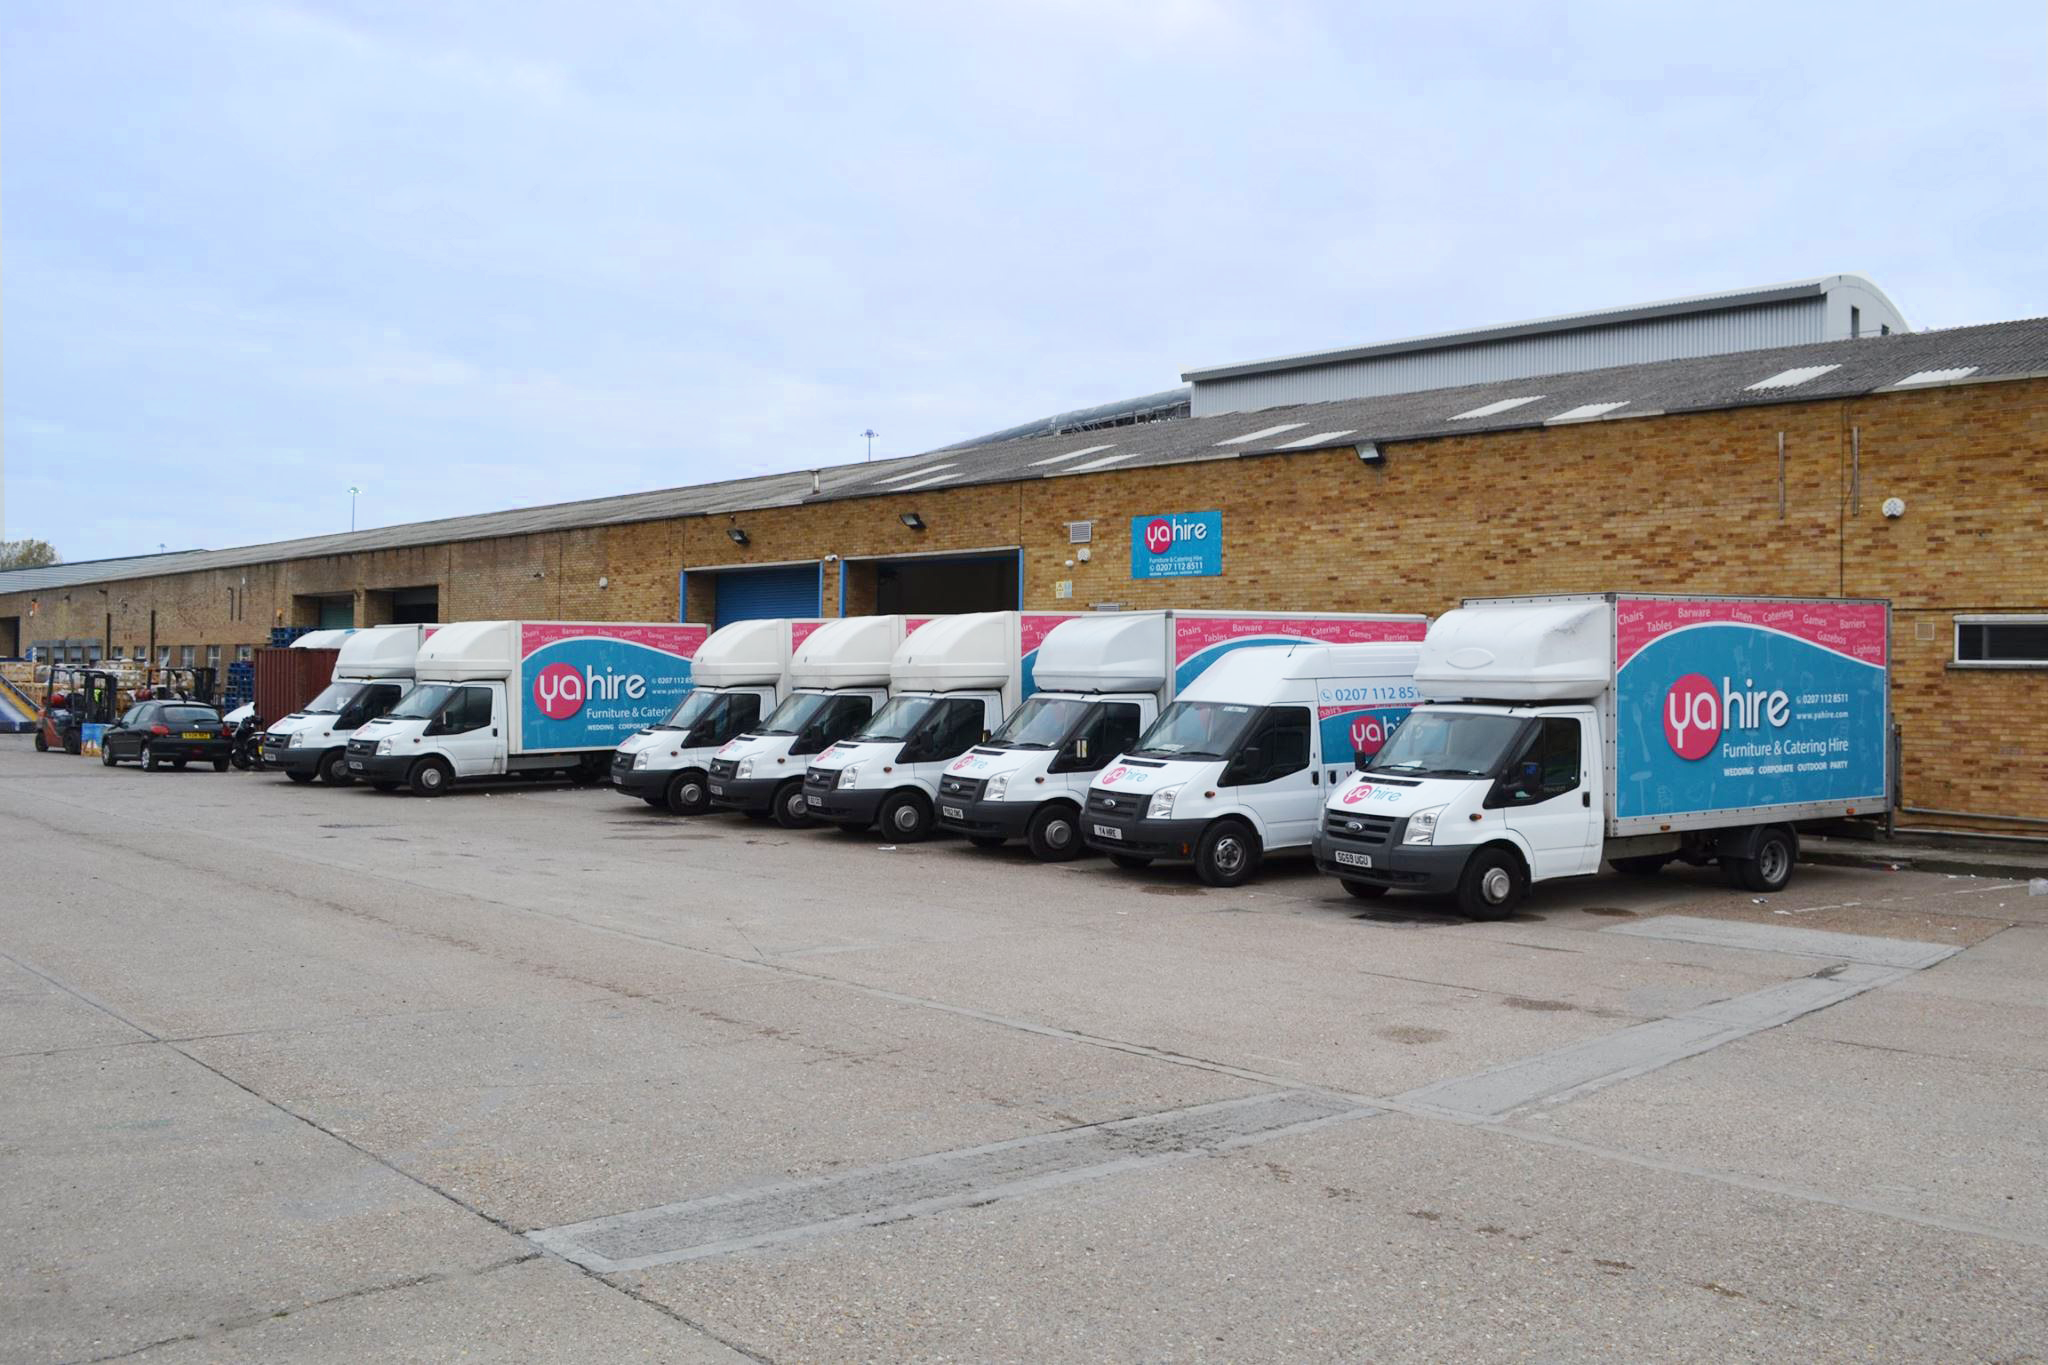 Fleet Of Yahire Vans At our London warehouses